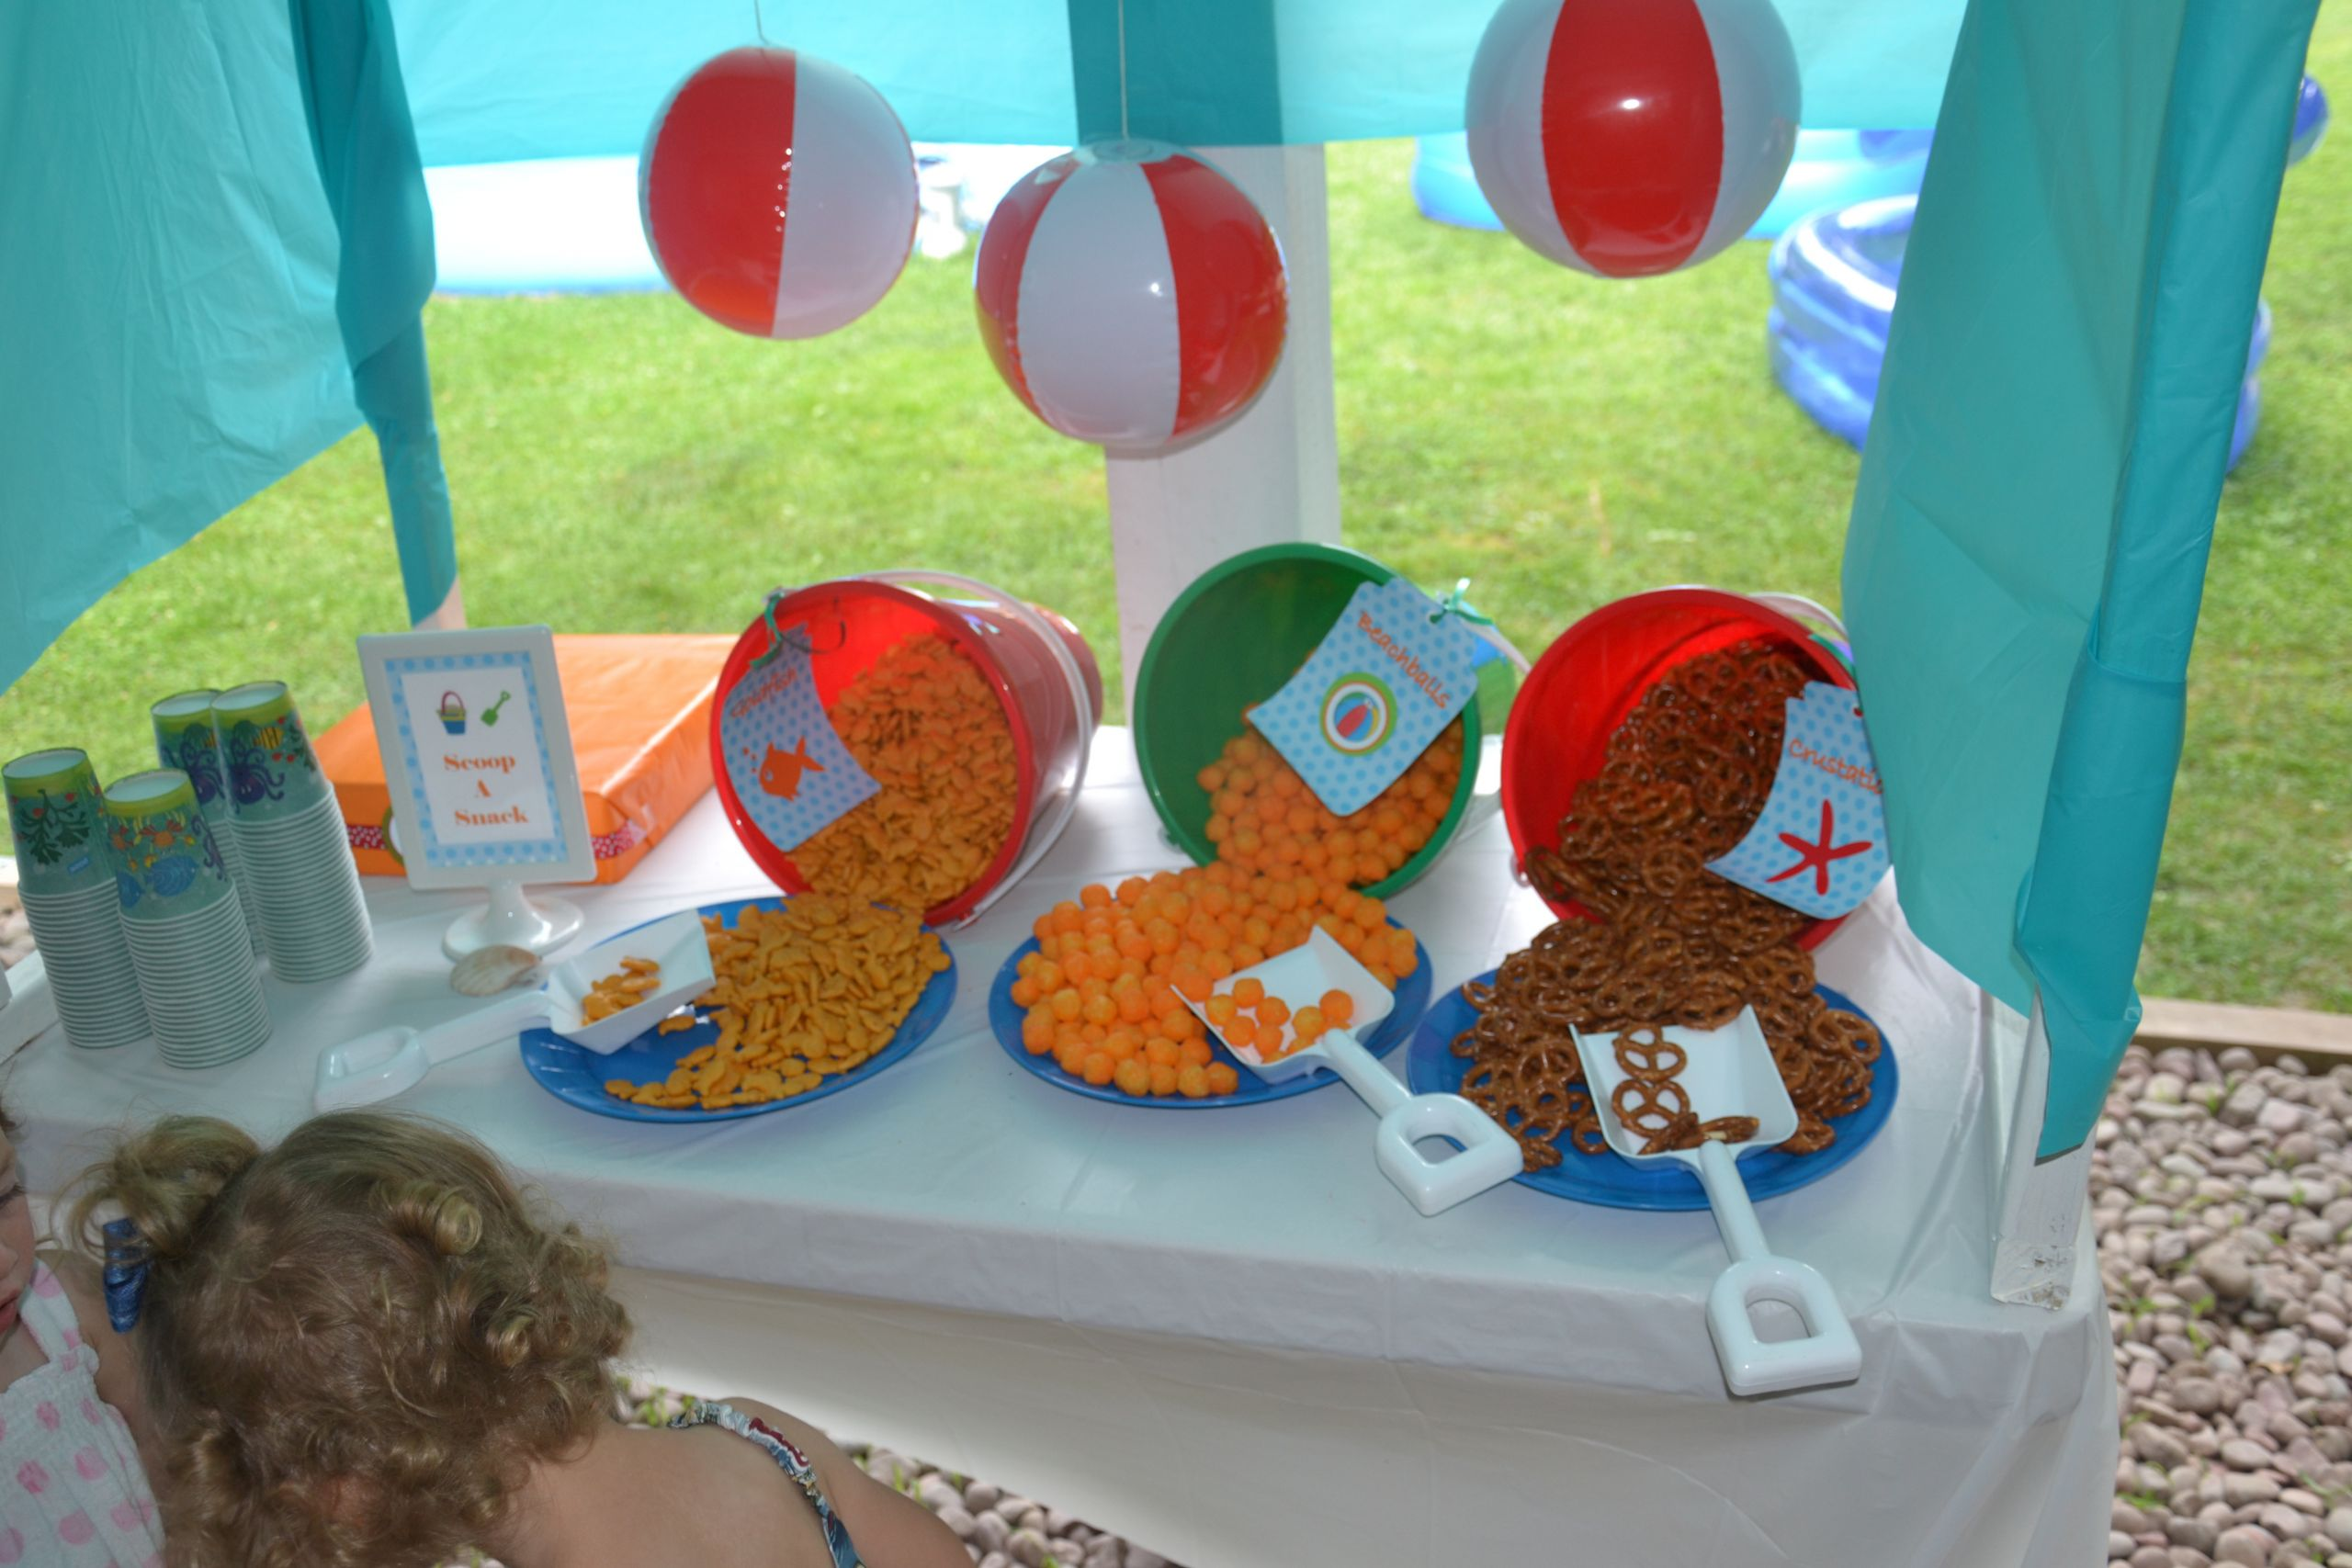 Beach Food Ideas For Party  Party on a Bud  Ideas for Serving Summer Snacks